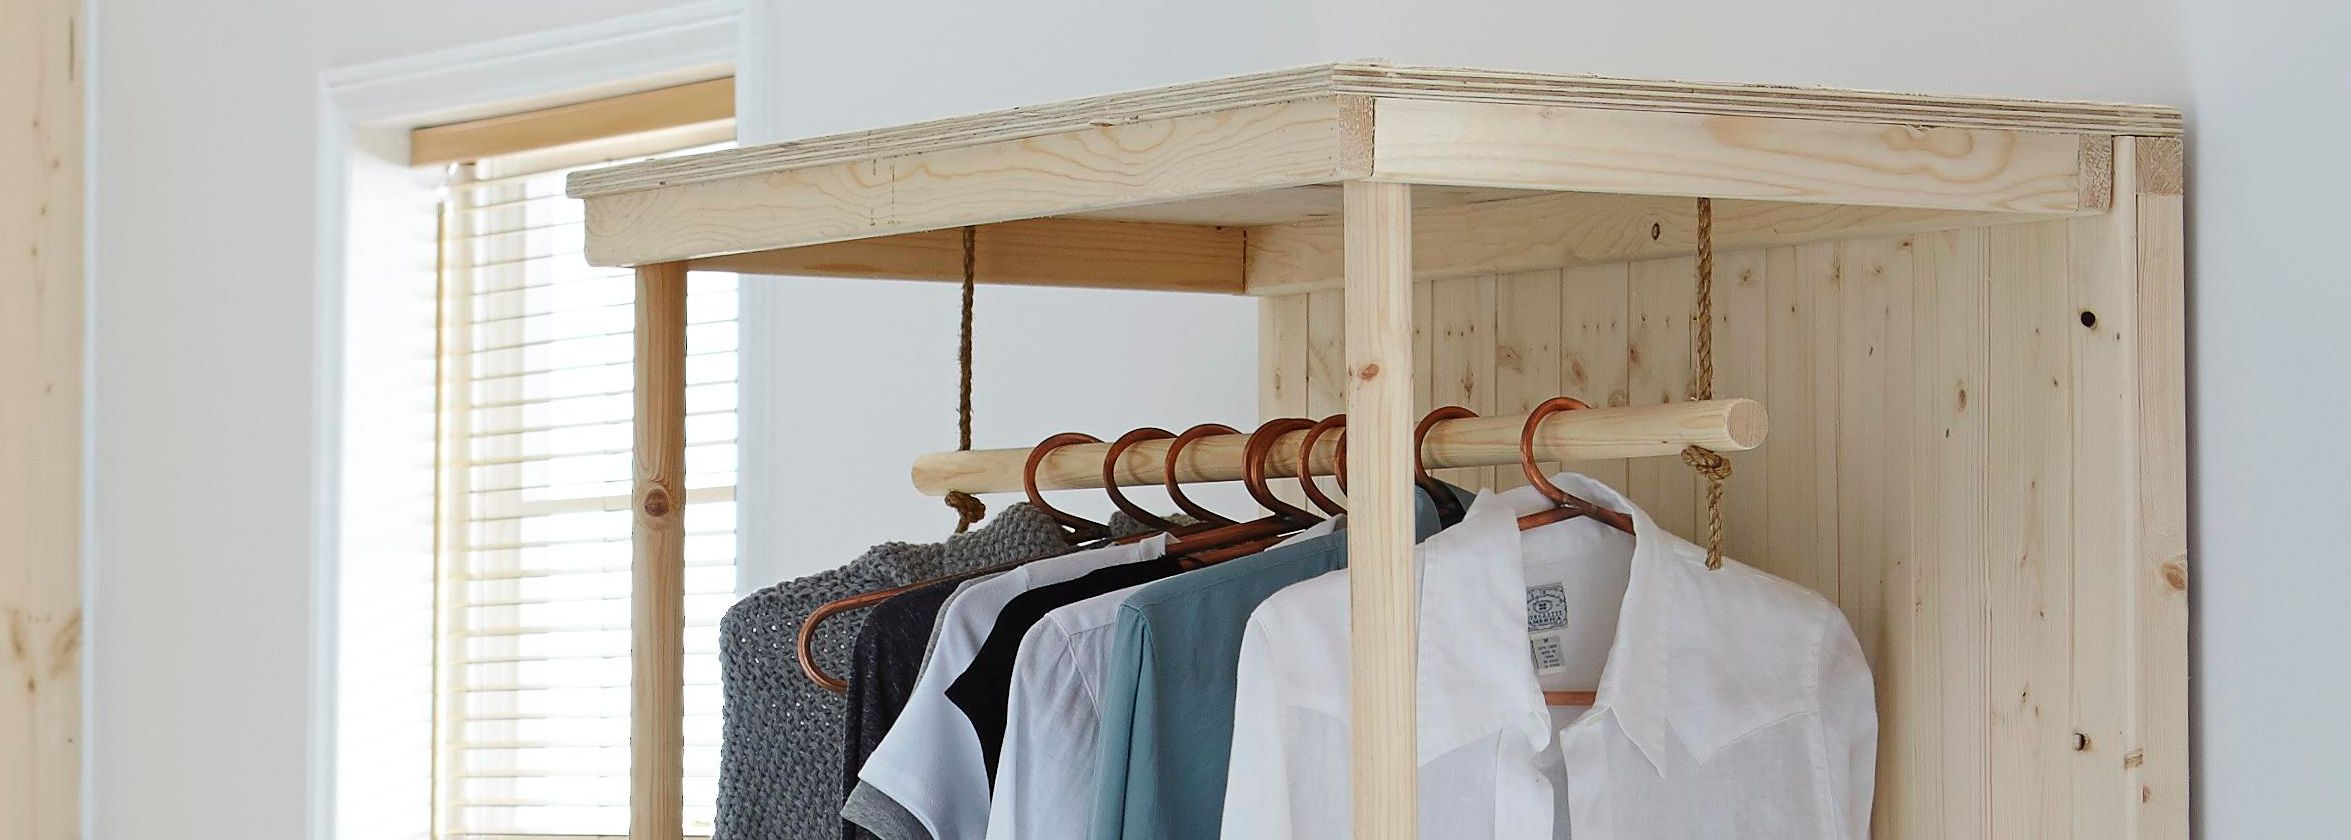 How To Make A Wardrobe Ideas Amp Advice Diy At B Amp Q